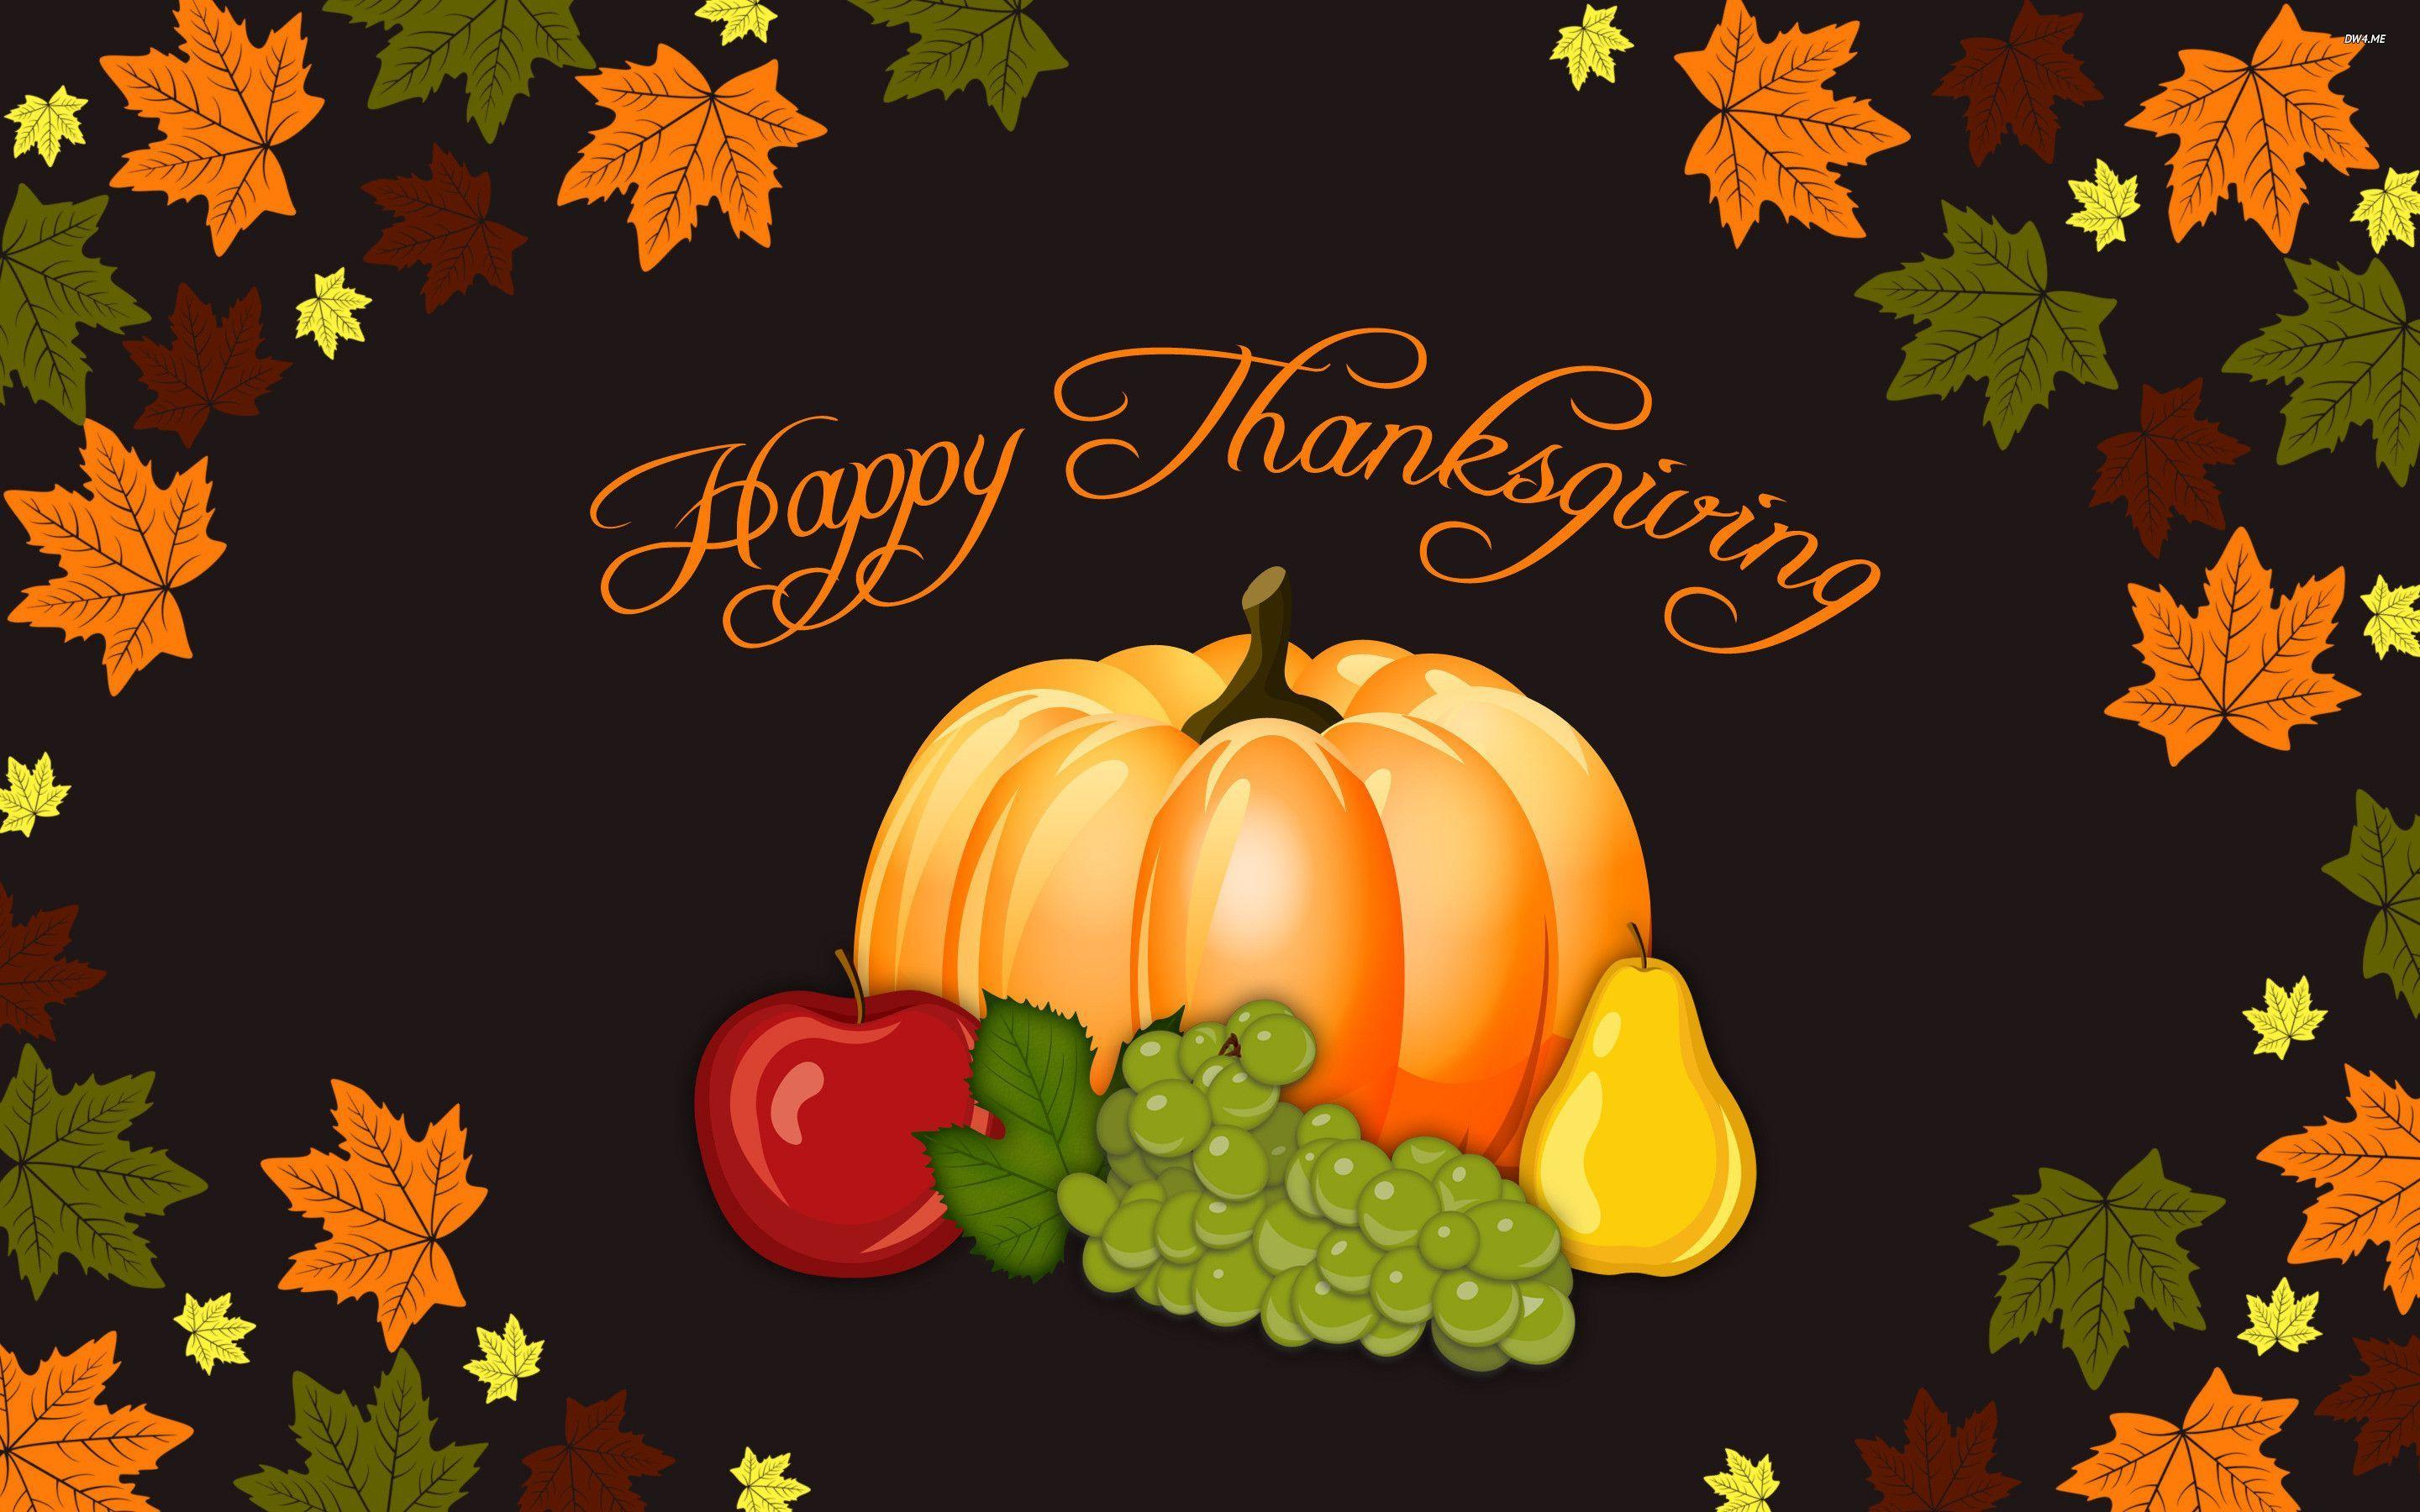 Wallpapers For > Happy Thanksgiving Wallpapers Hd